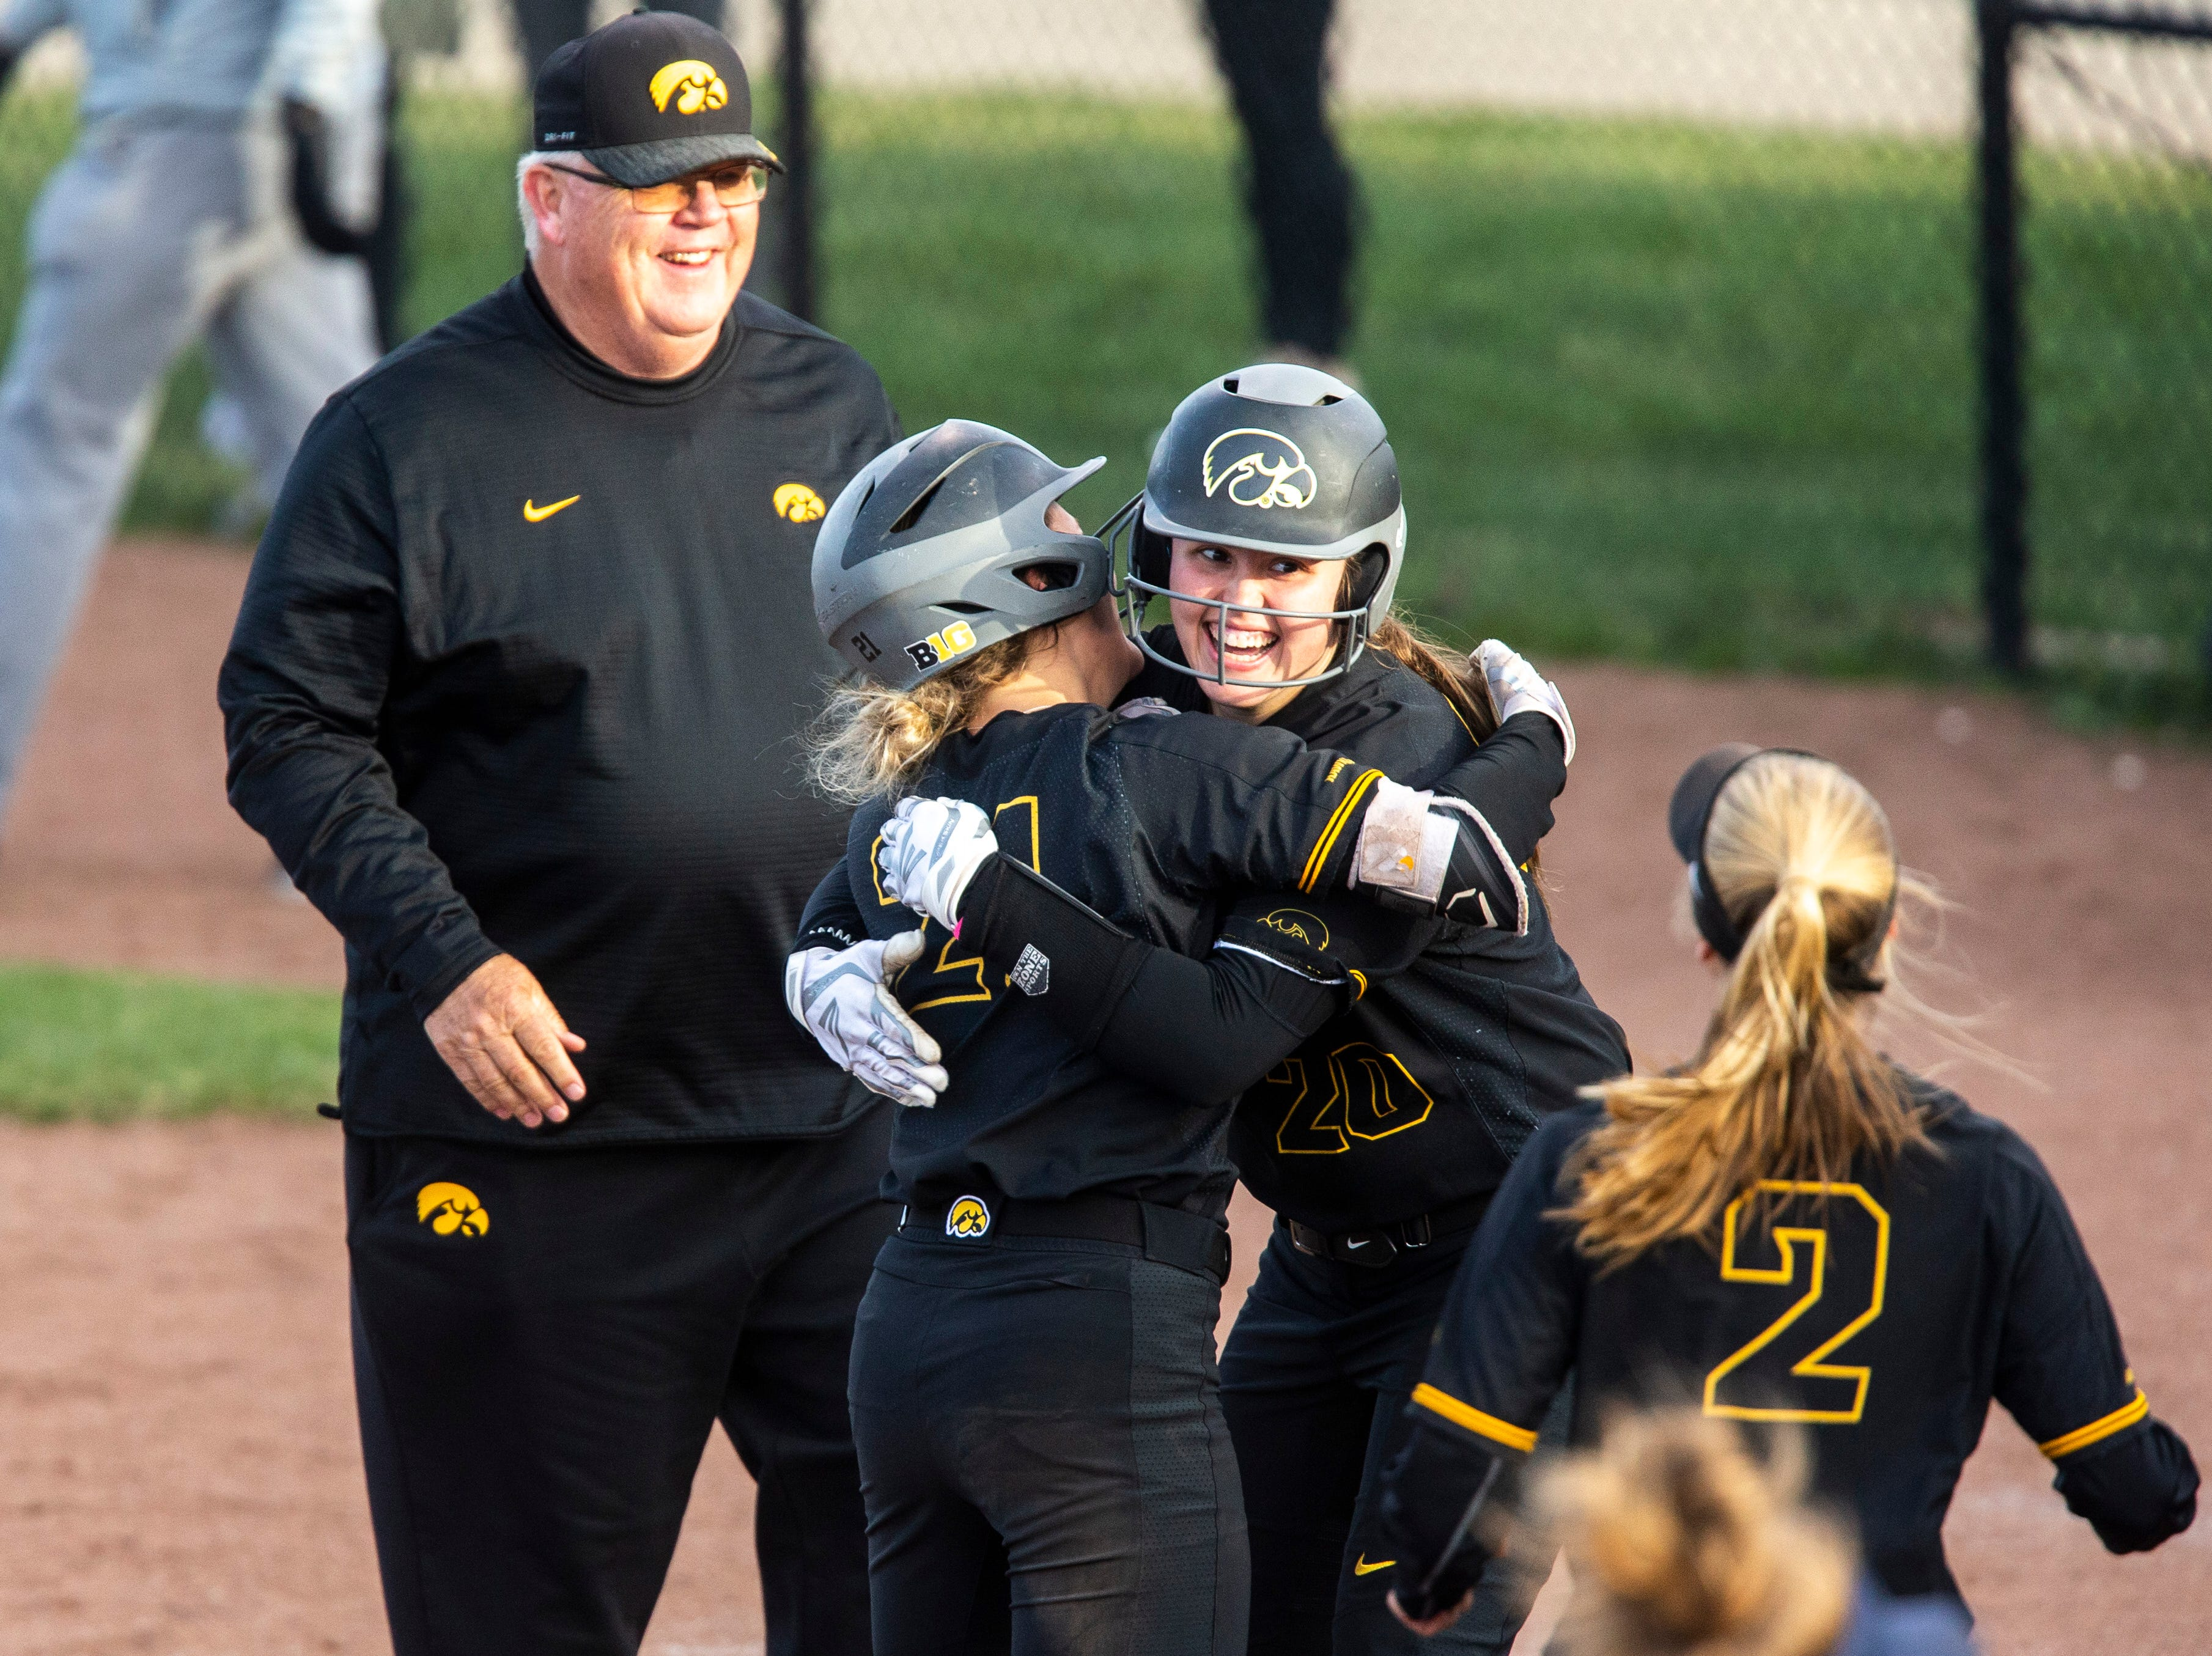 Iowa outfielder Havyn Monteer (21) gets embraced by teammate Iowa pitcher Miranda Schulte (20) after batting in a run for the win during a NCAA Big Ten Conference softball game on Saturday, April 13, 2019, at Bob Pearl Field in Coralville, Iowa. The Hawkeyes defeated Illinois, 4-3, for the first home win of the season.